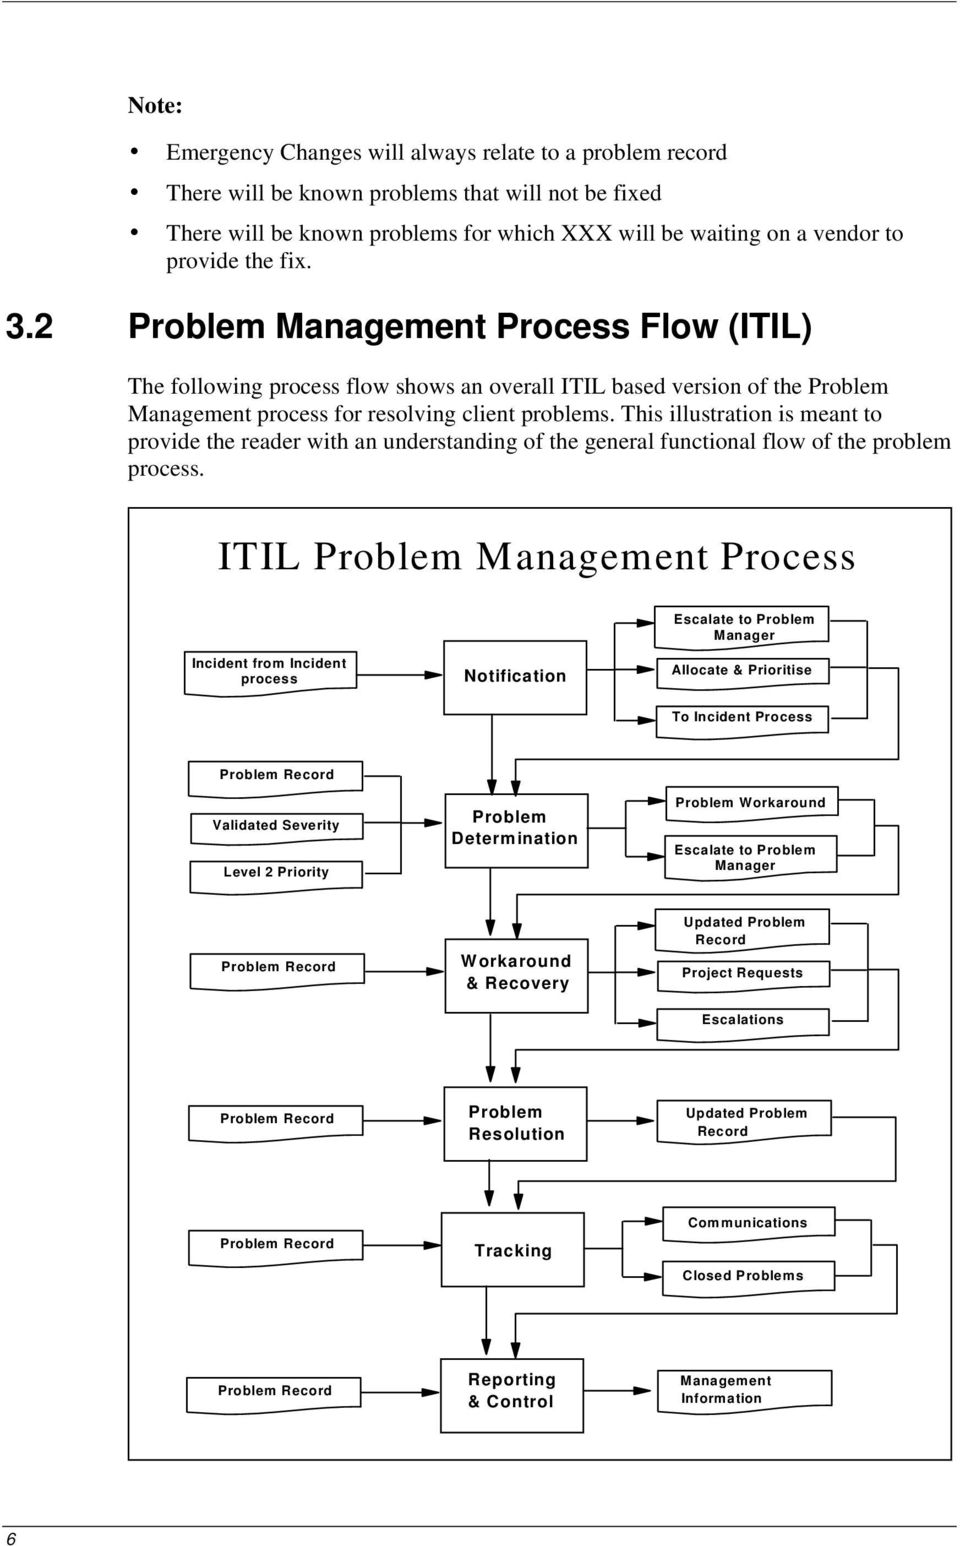 This illustration is meant to provide the reader ith an understanding of the general functional flo of the problem process.